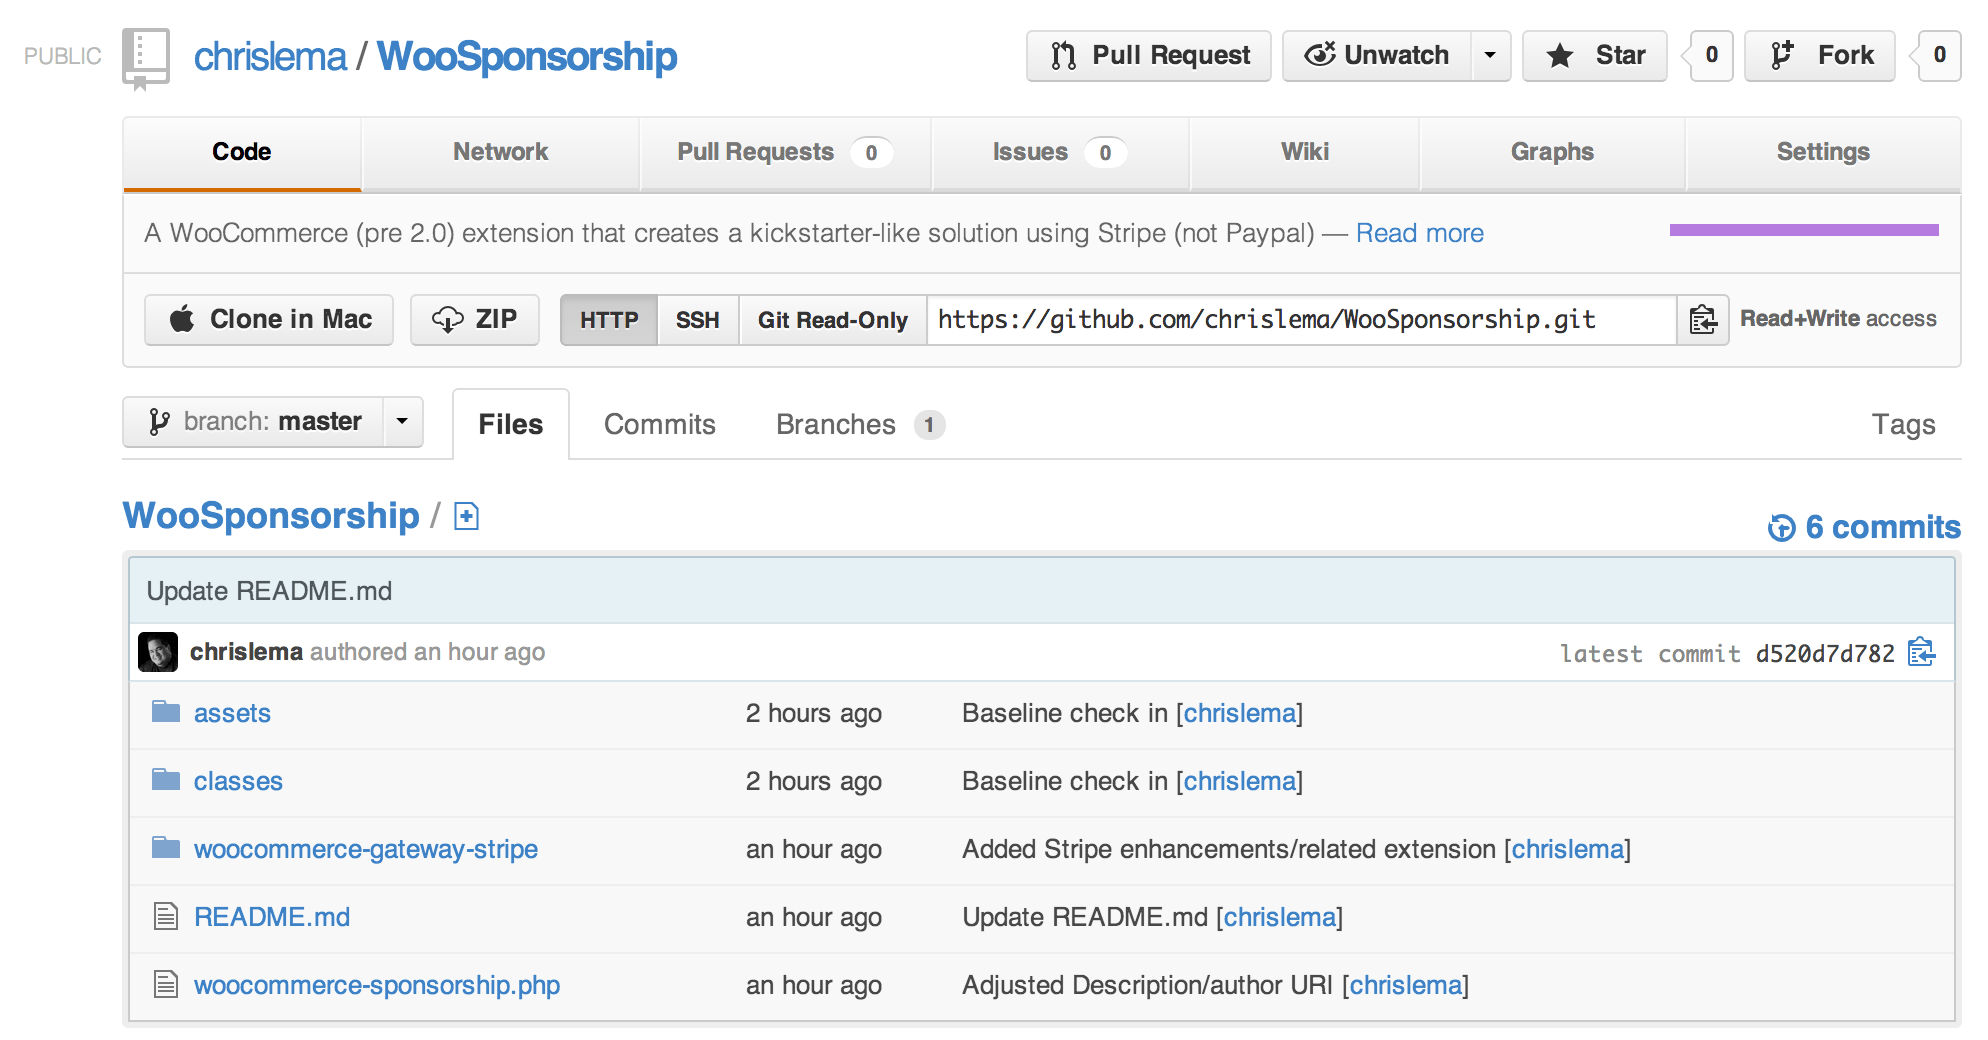 Want to download free woocommerce extensions? Sponsorship is